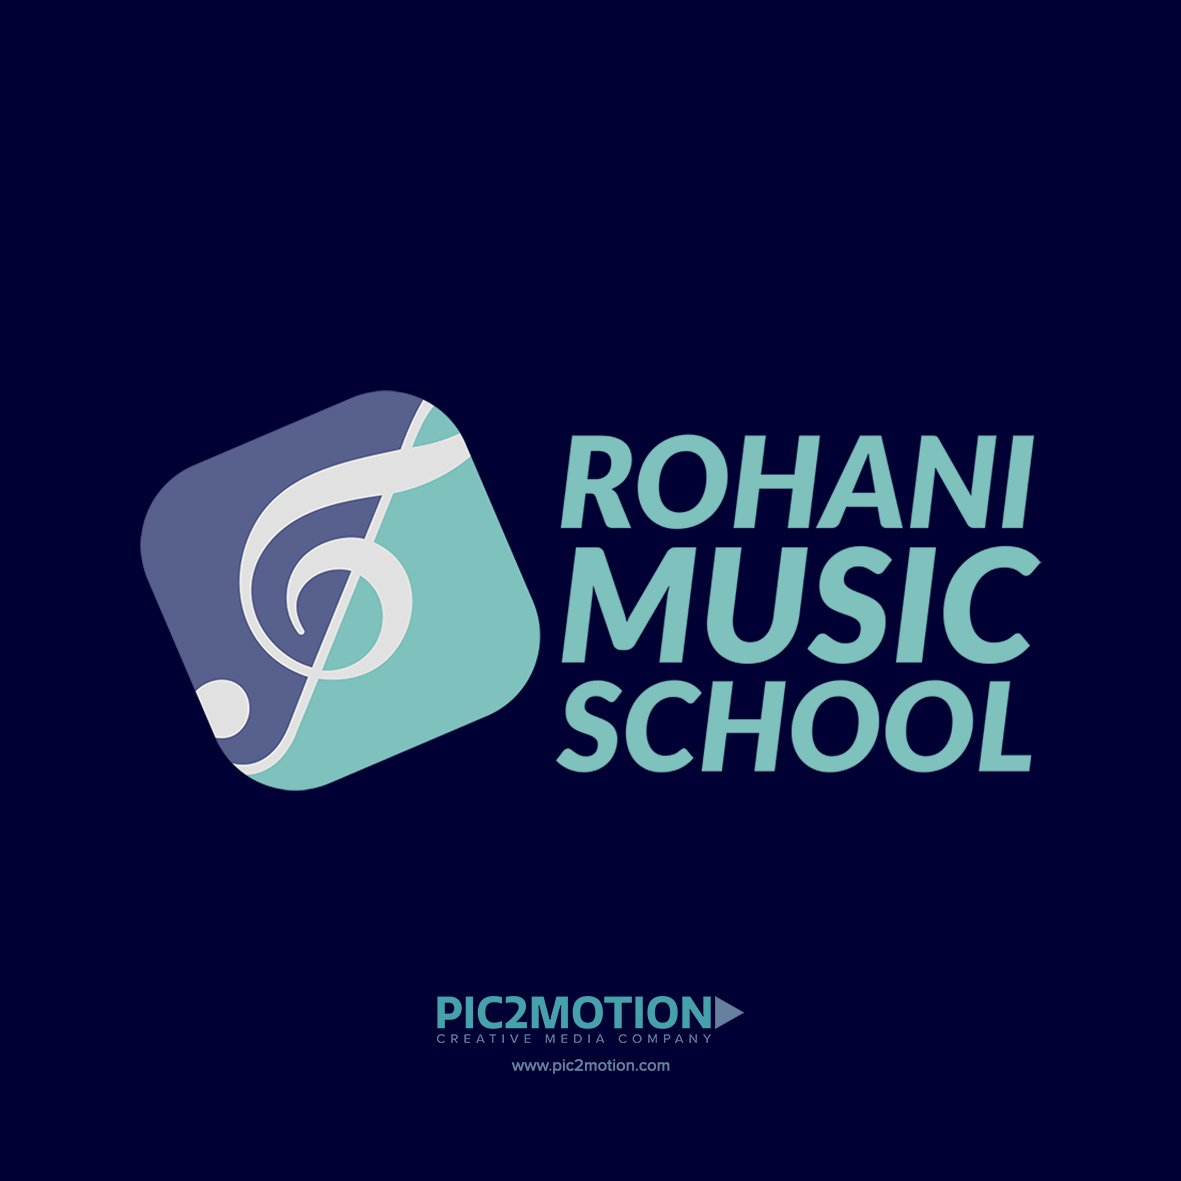 Rohani Music School - PIC2MOTION